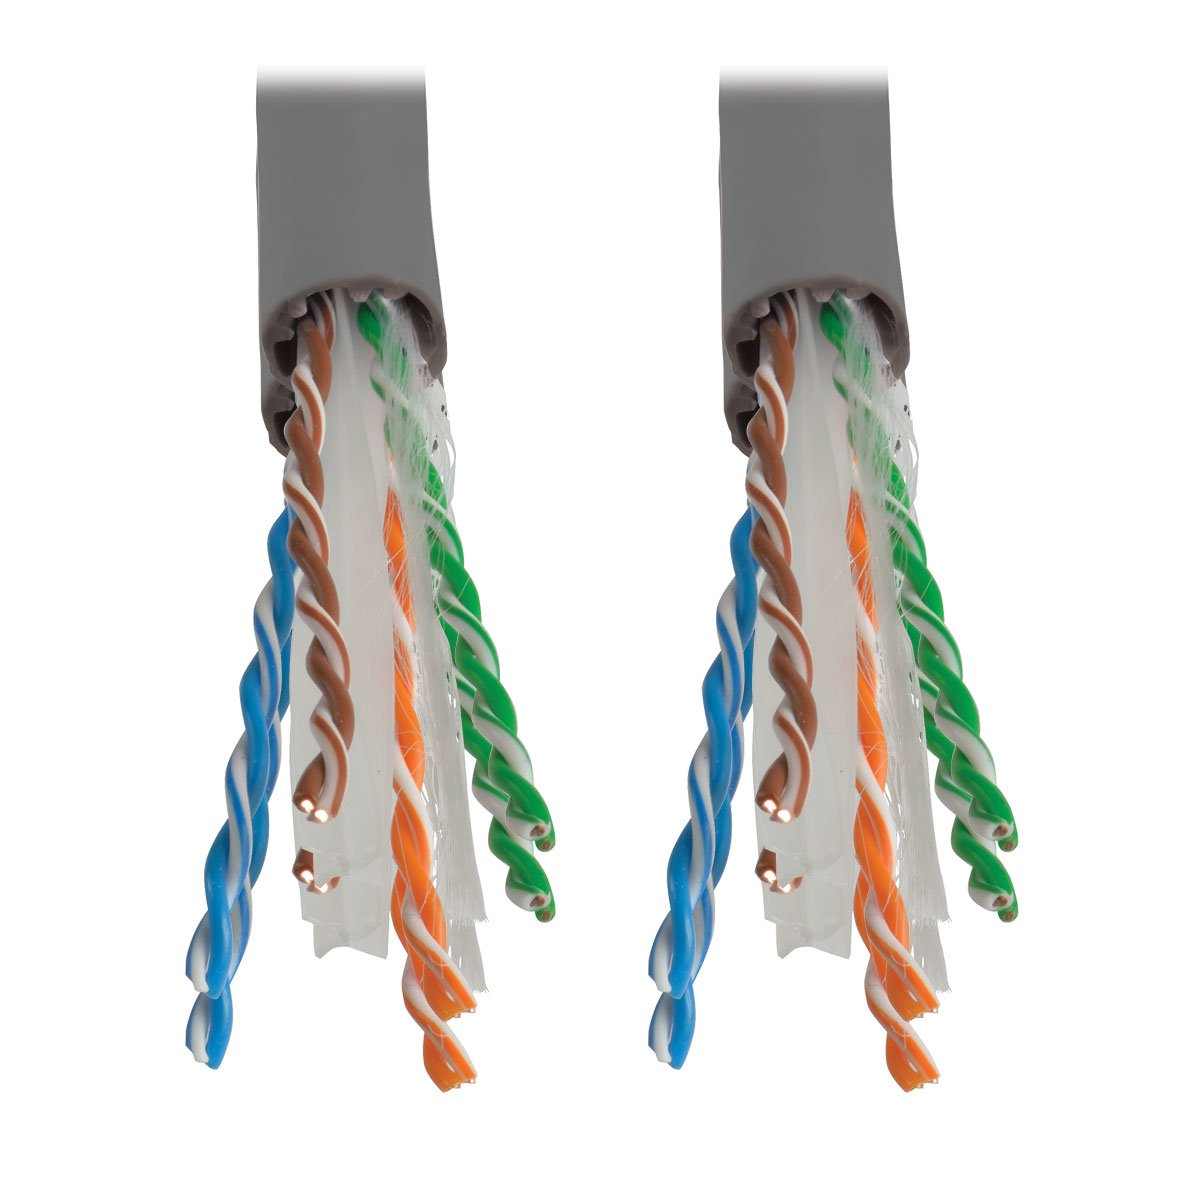 Tripp Lite Cat6 Gigabit Bulk Solid Plenum-Rated Cable Gray, 1000-ft.(N224-01K-GY) by Tripp Lite